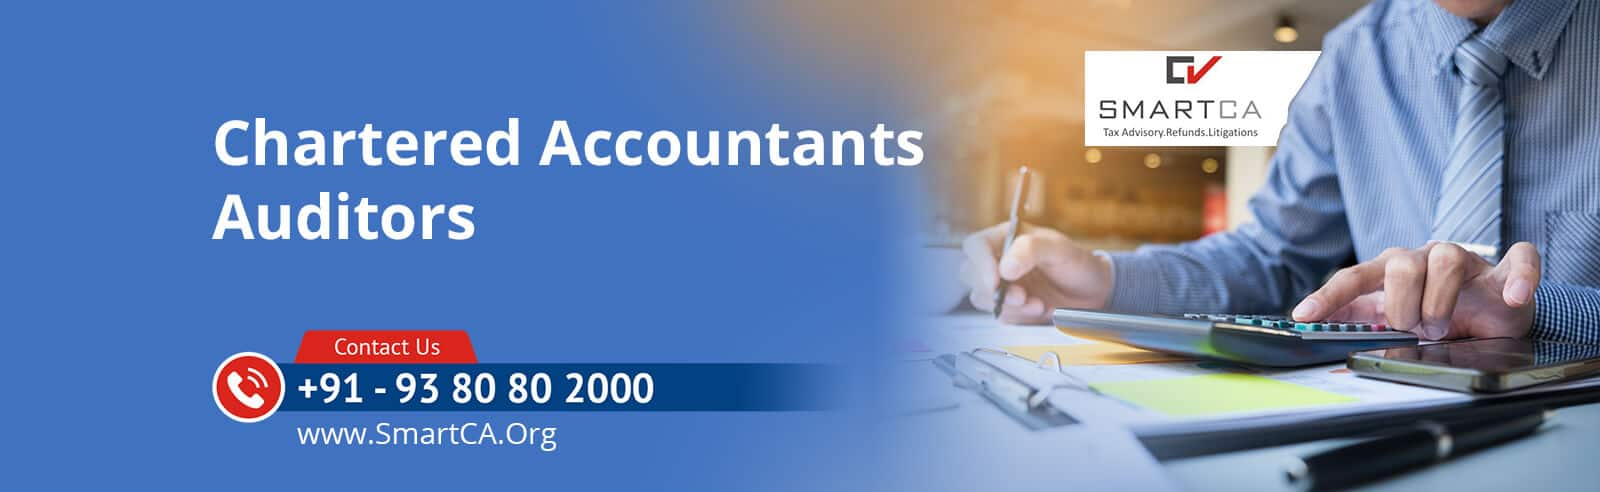 Auditors in Chennai Mandavelipakkam